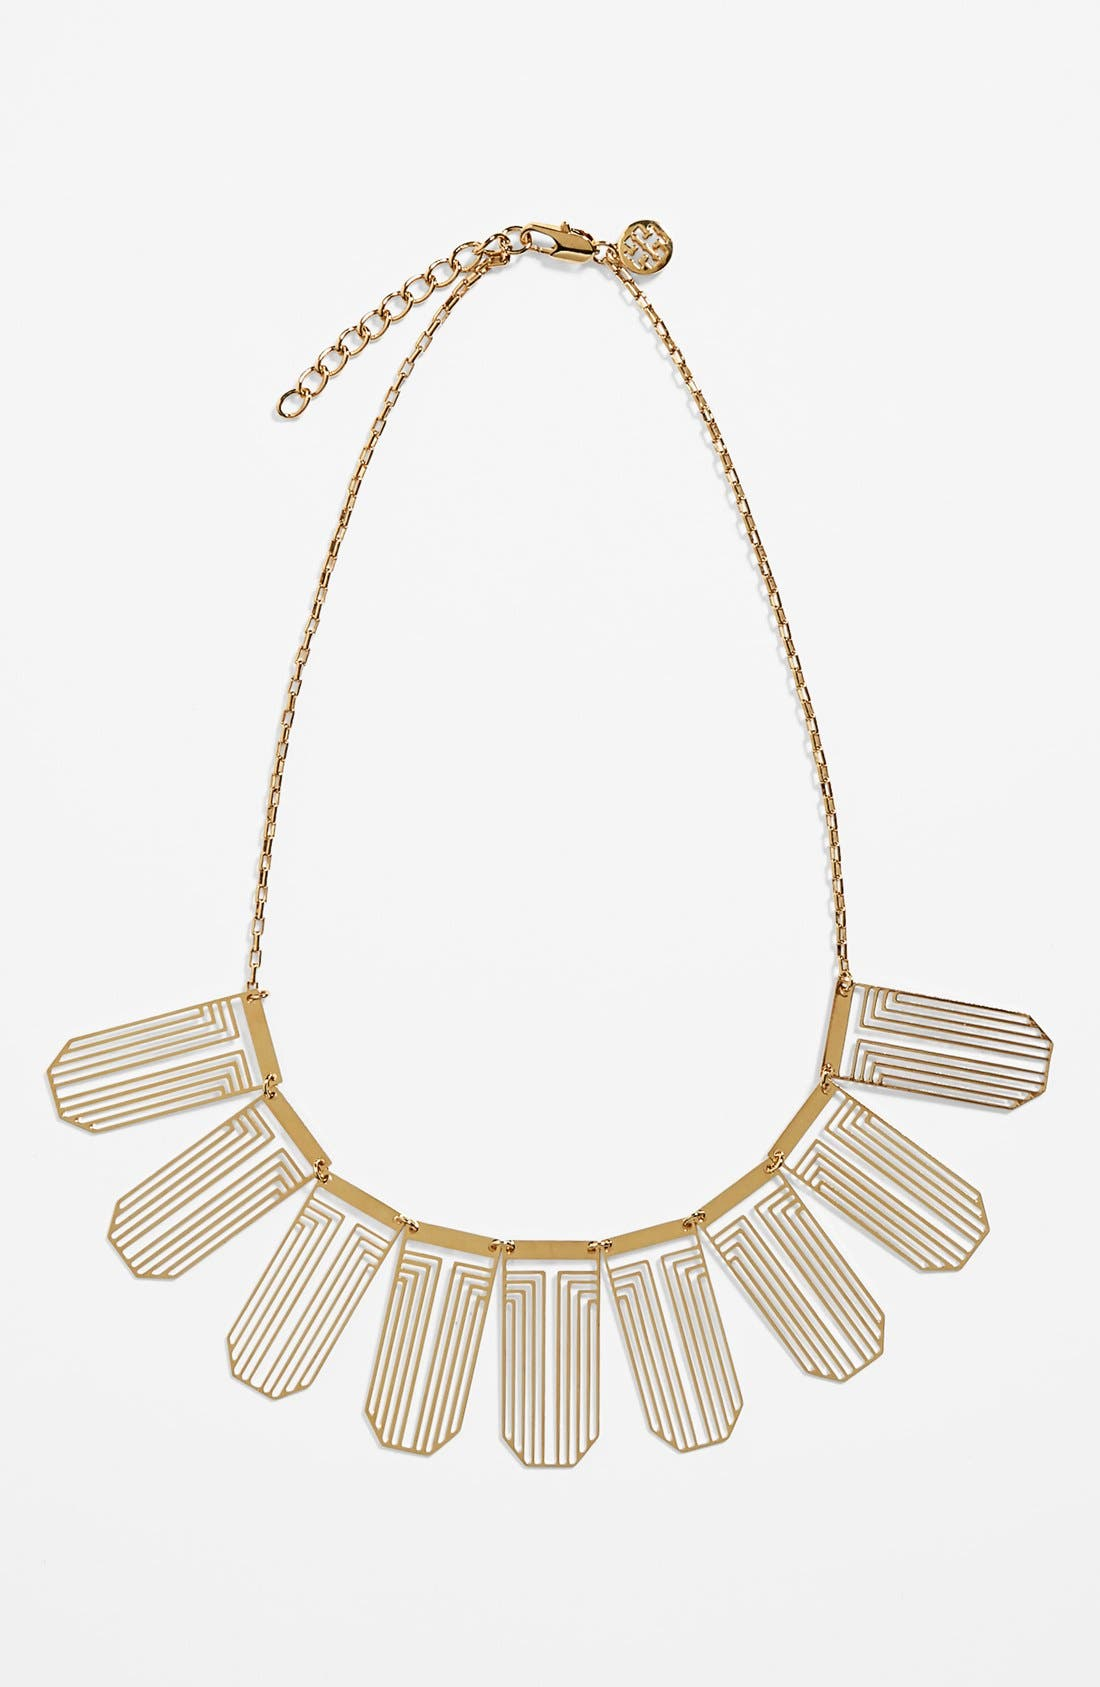 Alternate Image 1 Selected - Tory Burch 'Frete' Bib Necklace